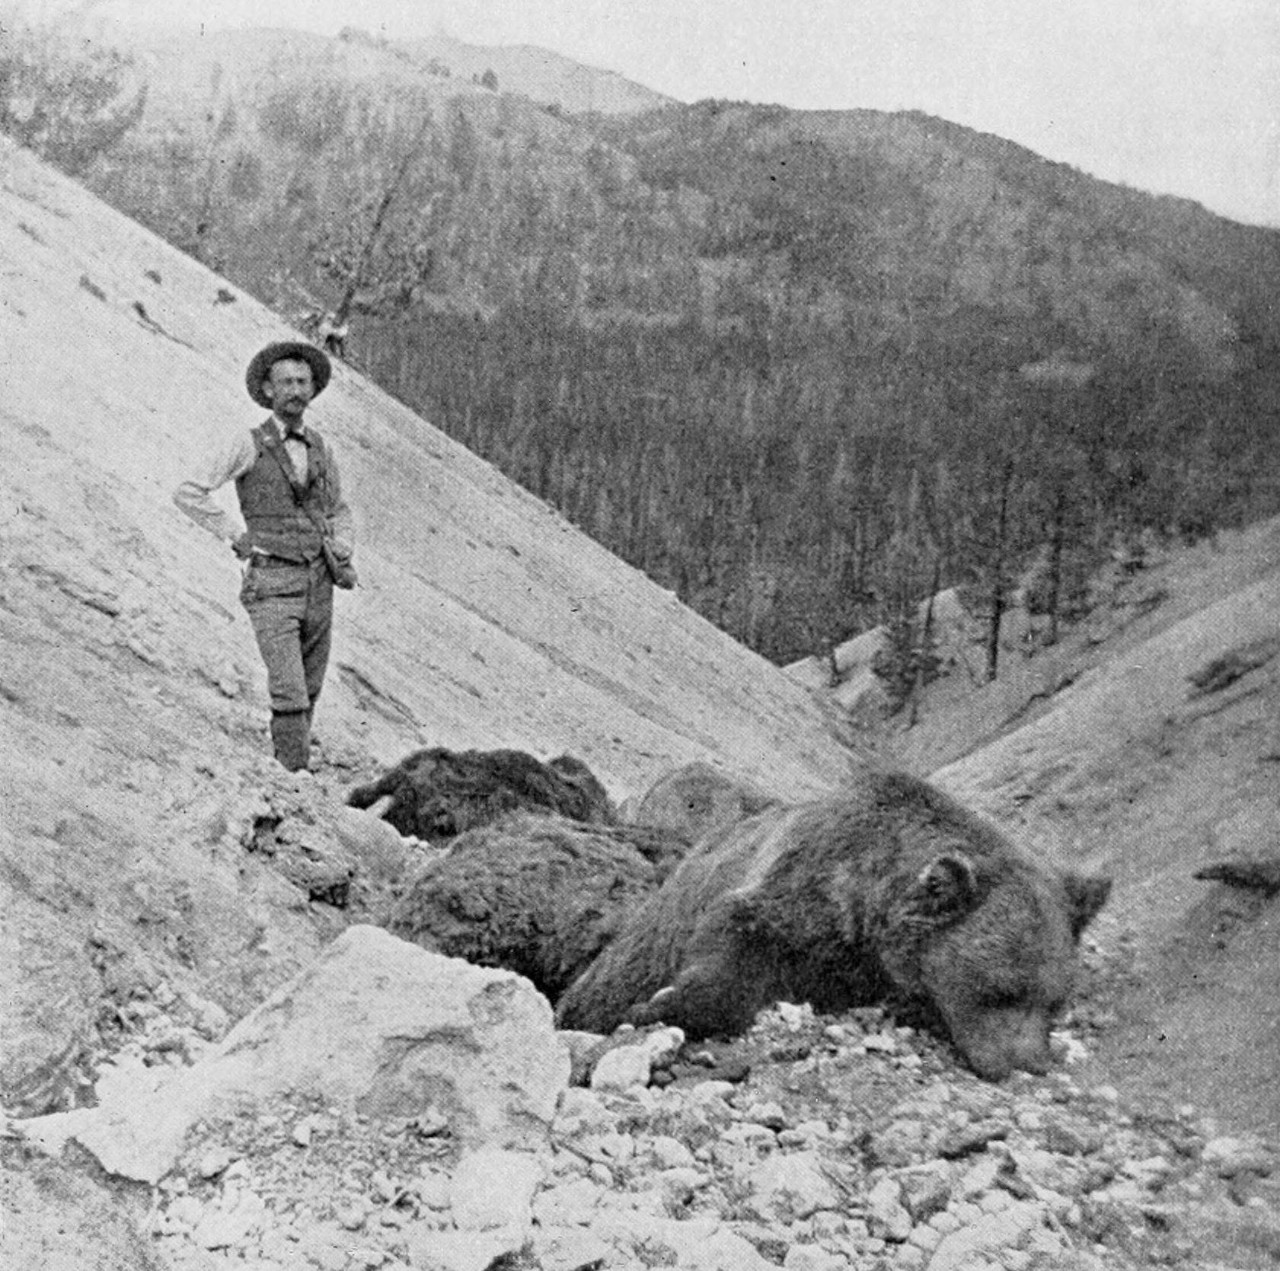 Harvard University geologist T.A. Jaggar Jr. poses next to several brown bears that were asphyxiated by toxic fumes in Yellowstone's Death Gulch in this 1899 photo. Today, animals such as bison occasionally wander into low-lying areas of Yellowstone's geyser basin where they succumb to trapped toxic gases. (Photo by U.S. Geological Survey)